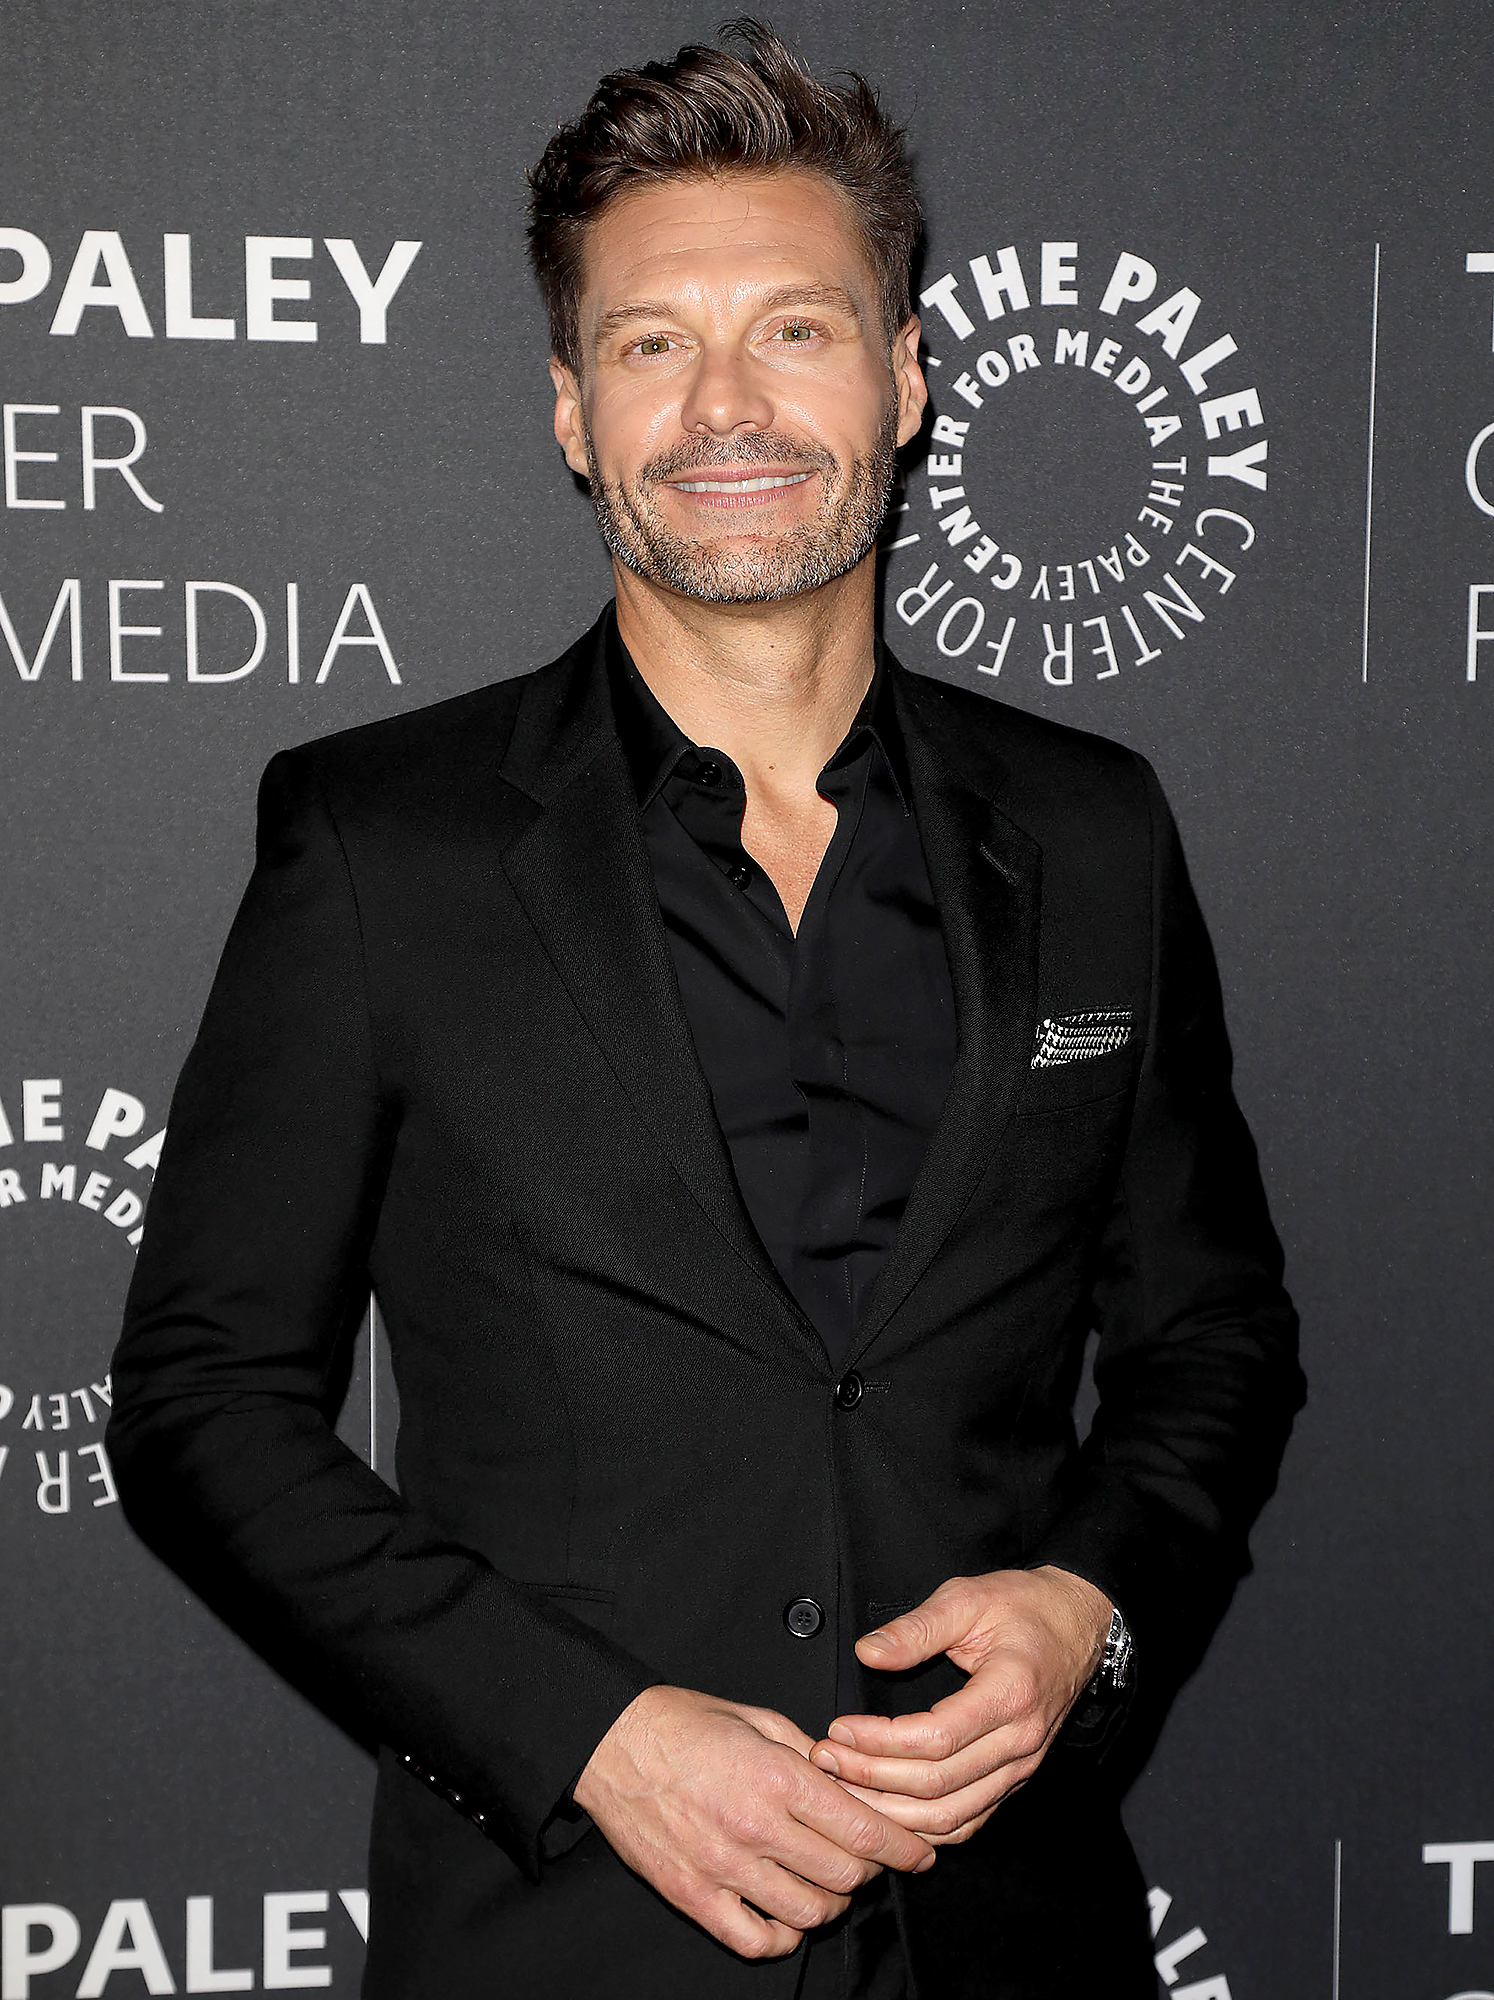 Ryan Seacrest Will Return to NYC for Live